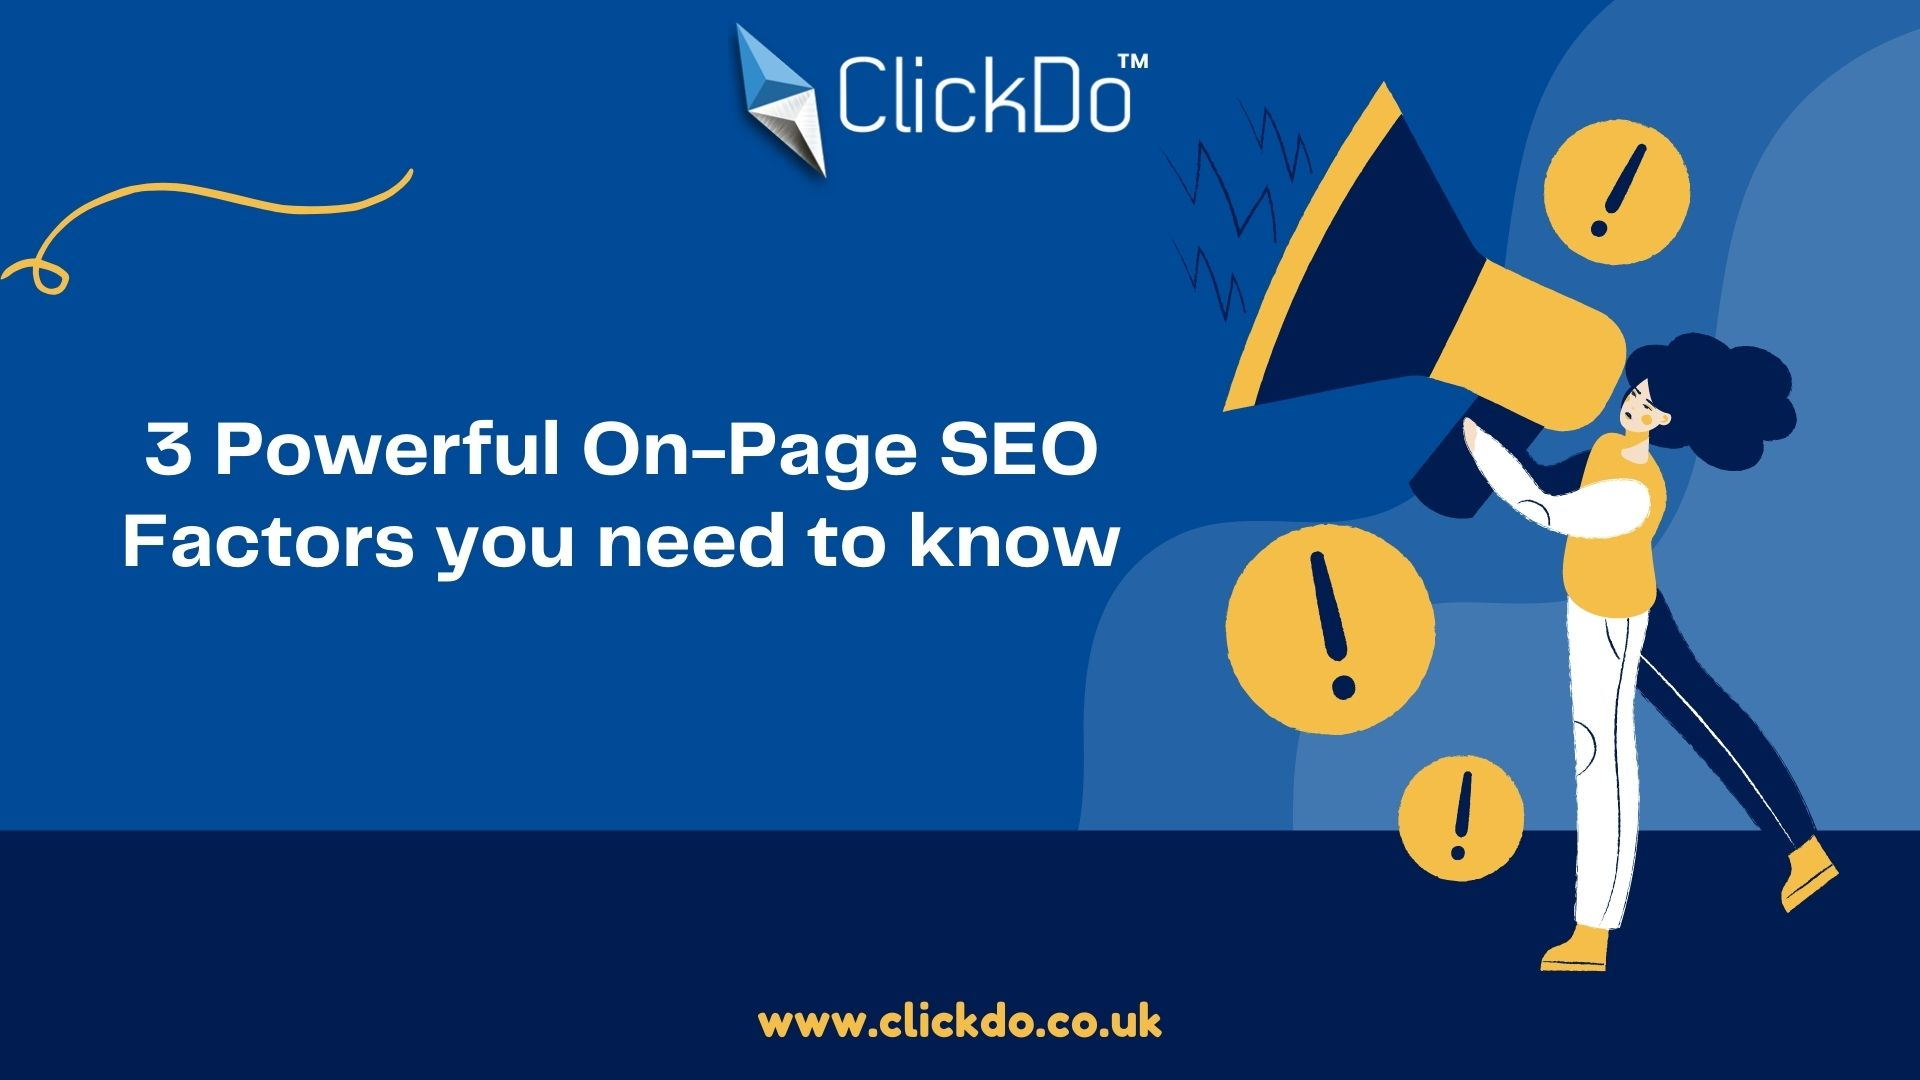 3 Powerful On-Page SEO Factors you need to know